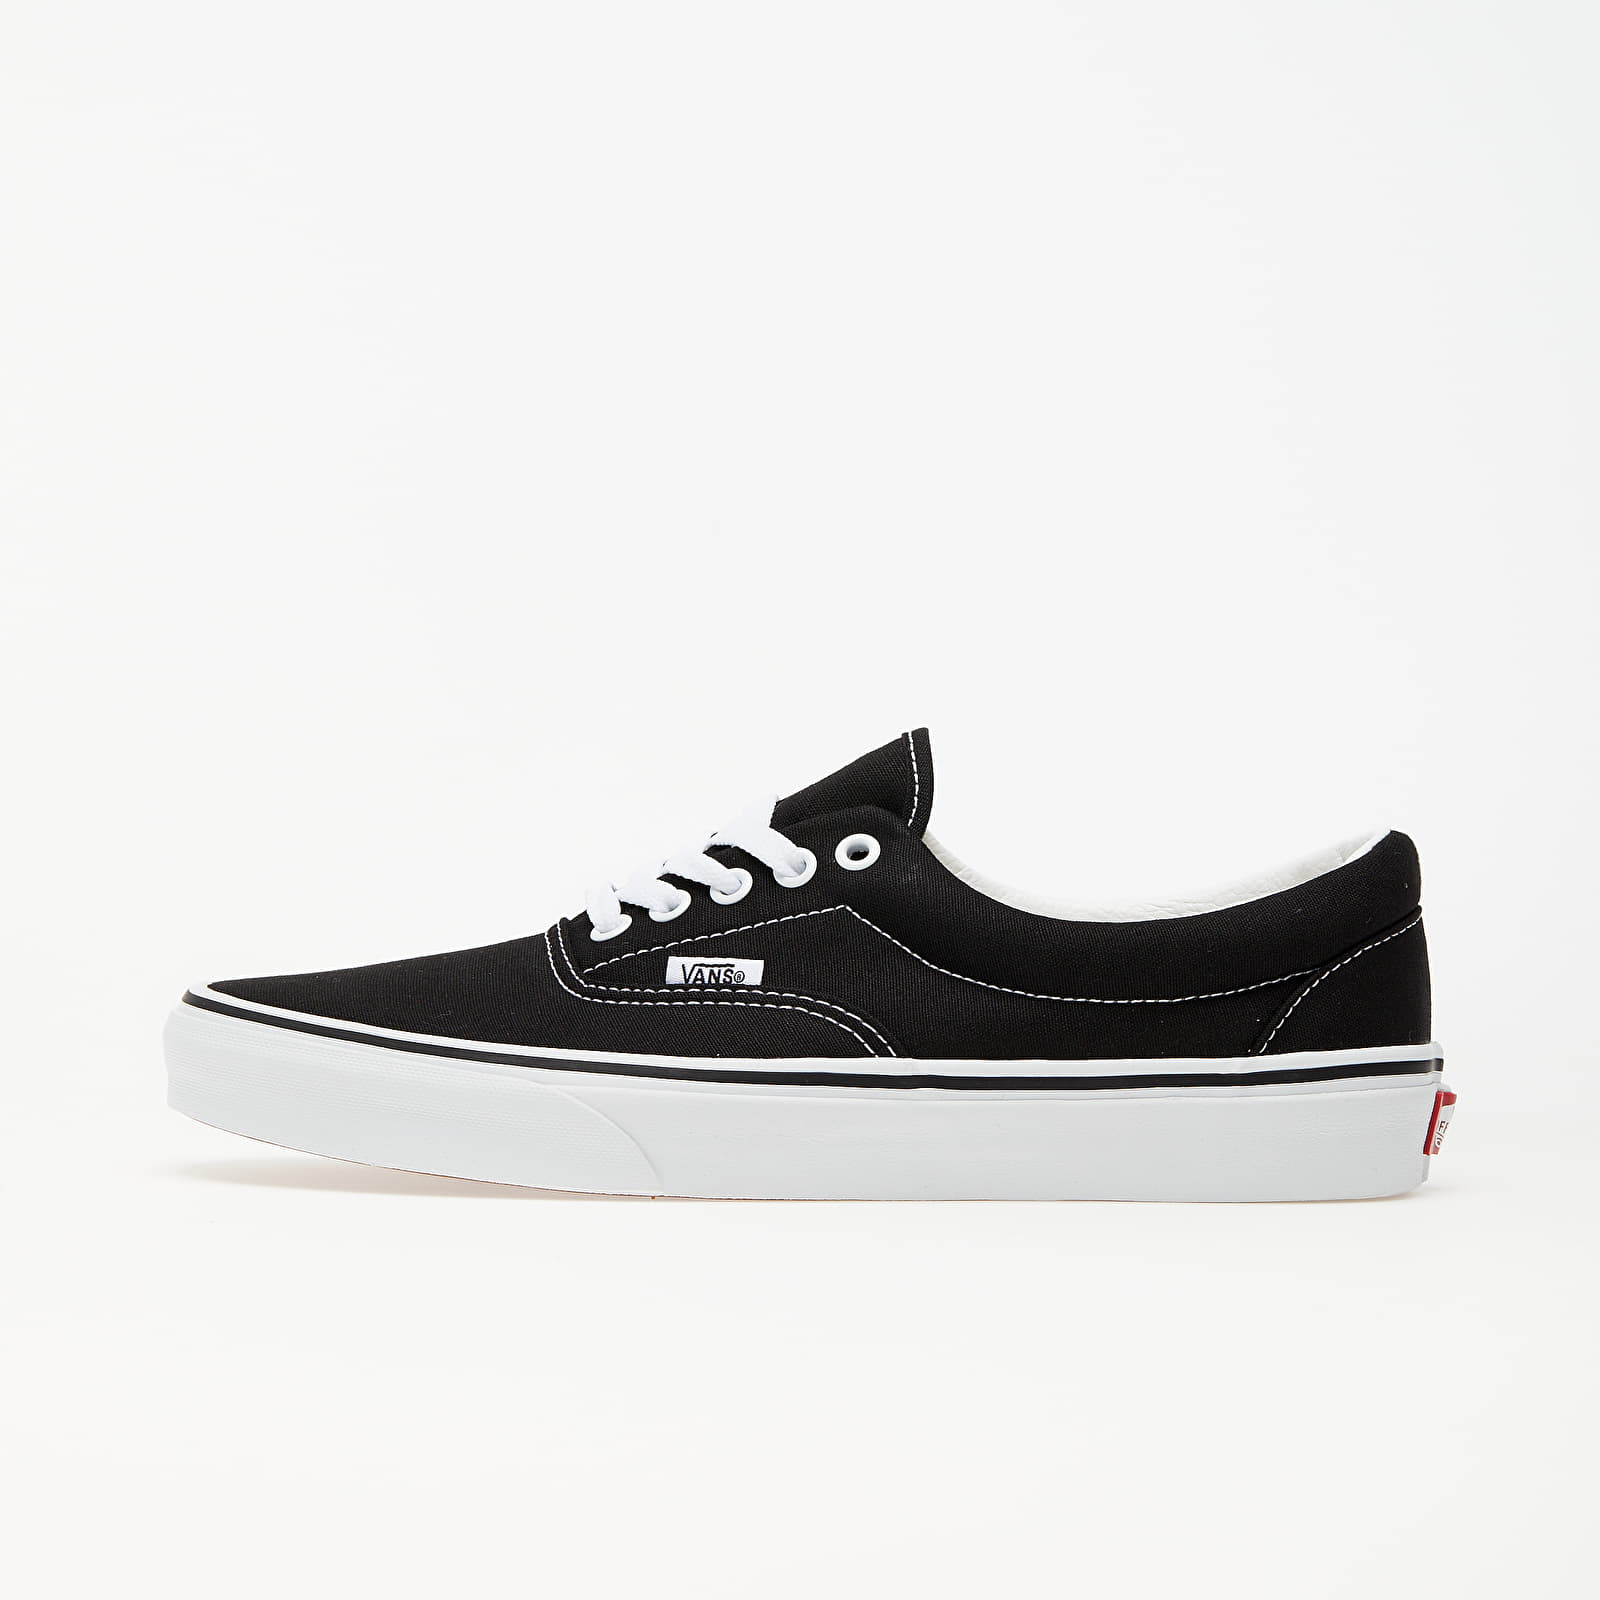 Men's shoes Vans Era Black